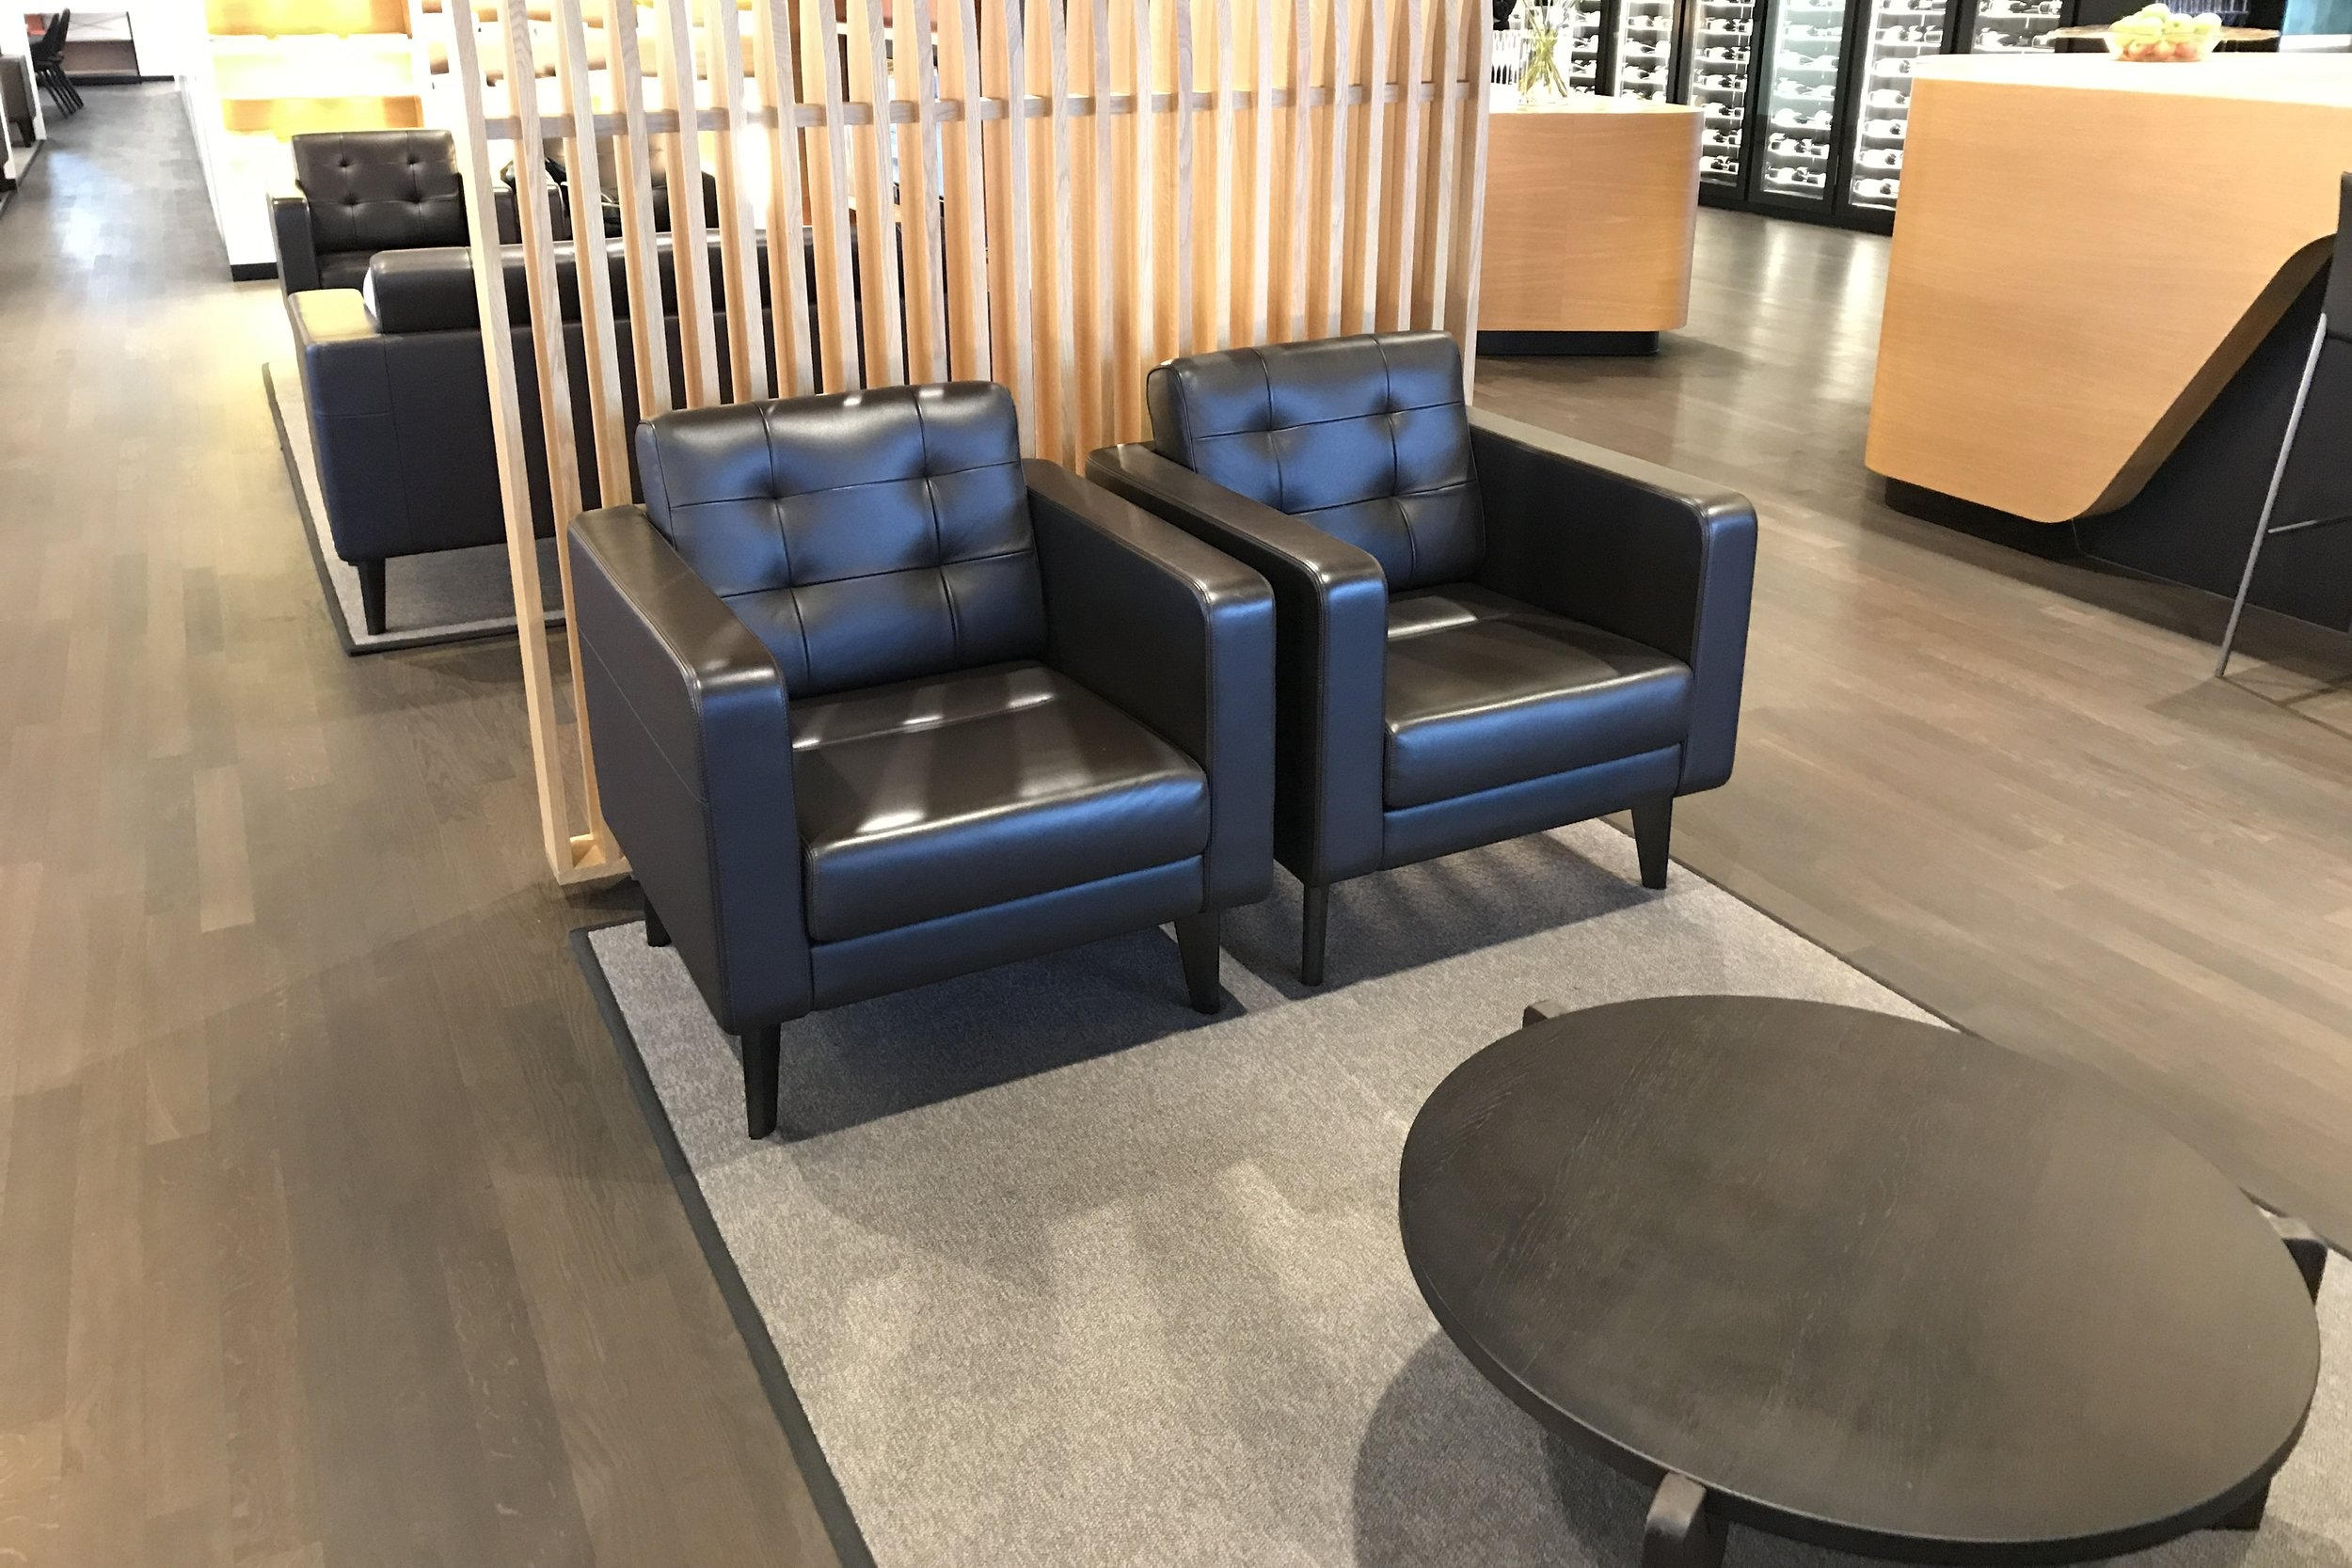 Swiss First Class Lounge Zurich – Seating area